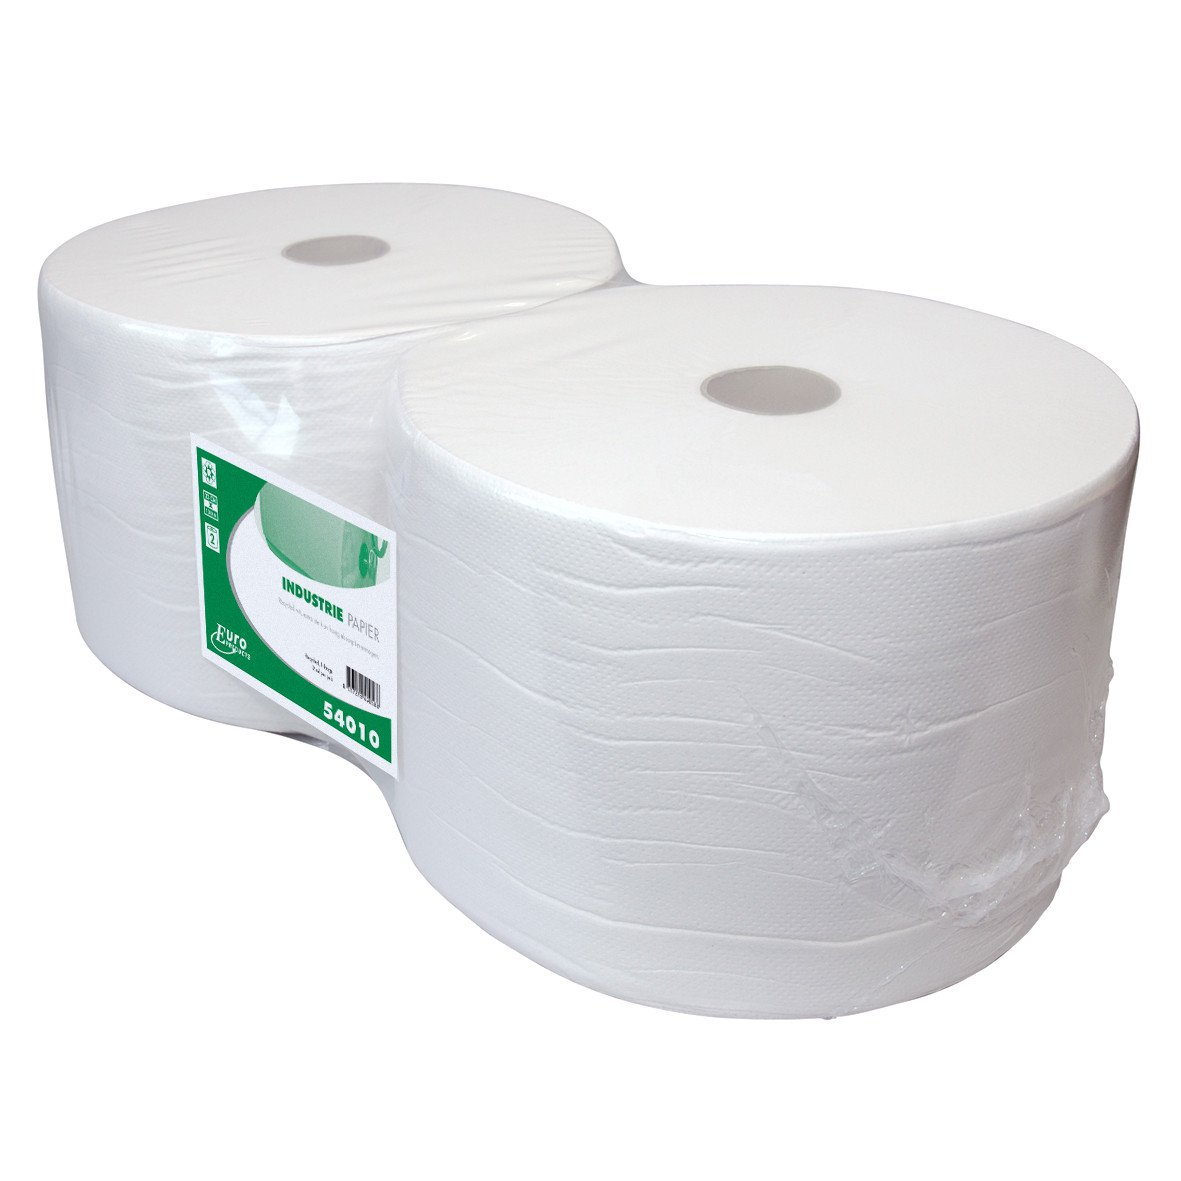 Euro Products | Industriepapier | 1- laags recycled | Wit | 2 x 1000 meter